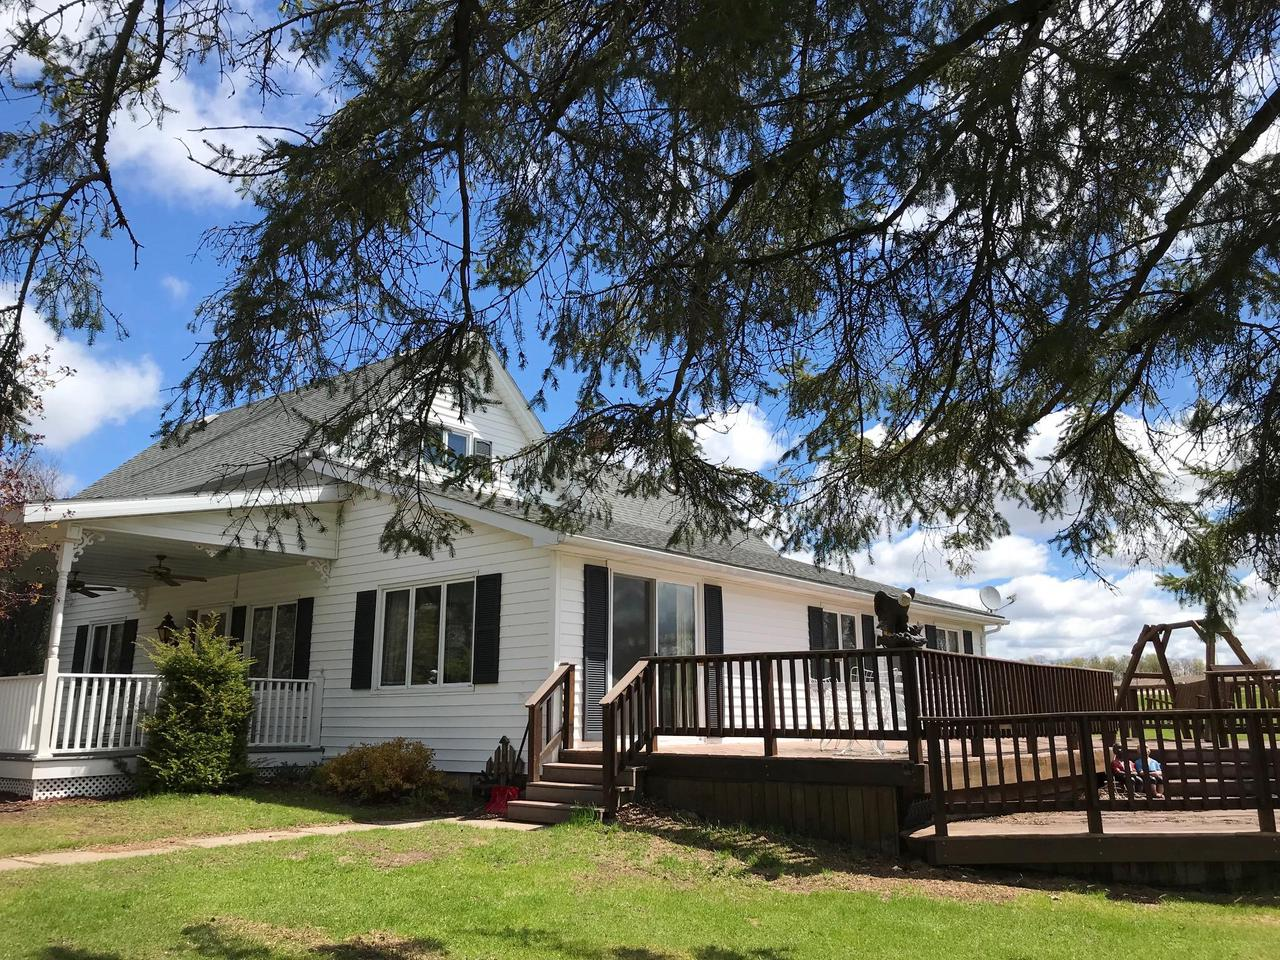 OUTLET CREEK-BUSINESS OPPORTUNITY-Have your home and business in the same location. 18.39 ACRES,  1 1/2  story original farm home  improvements in 1985, 4 bedroom, one bath ,mud room with shower.  two car garage, 40x60 barn, 60X80 multi-purpose, pole building heated and insulated with running water.   Blacktop driveway.  Awesome hunting, fishing, and ATV area.